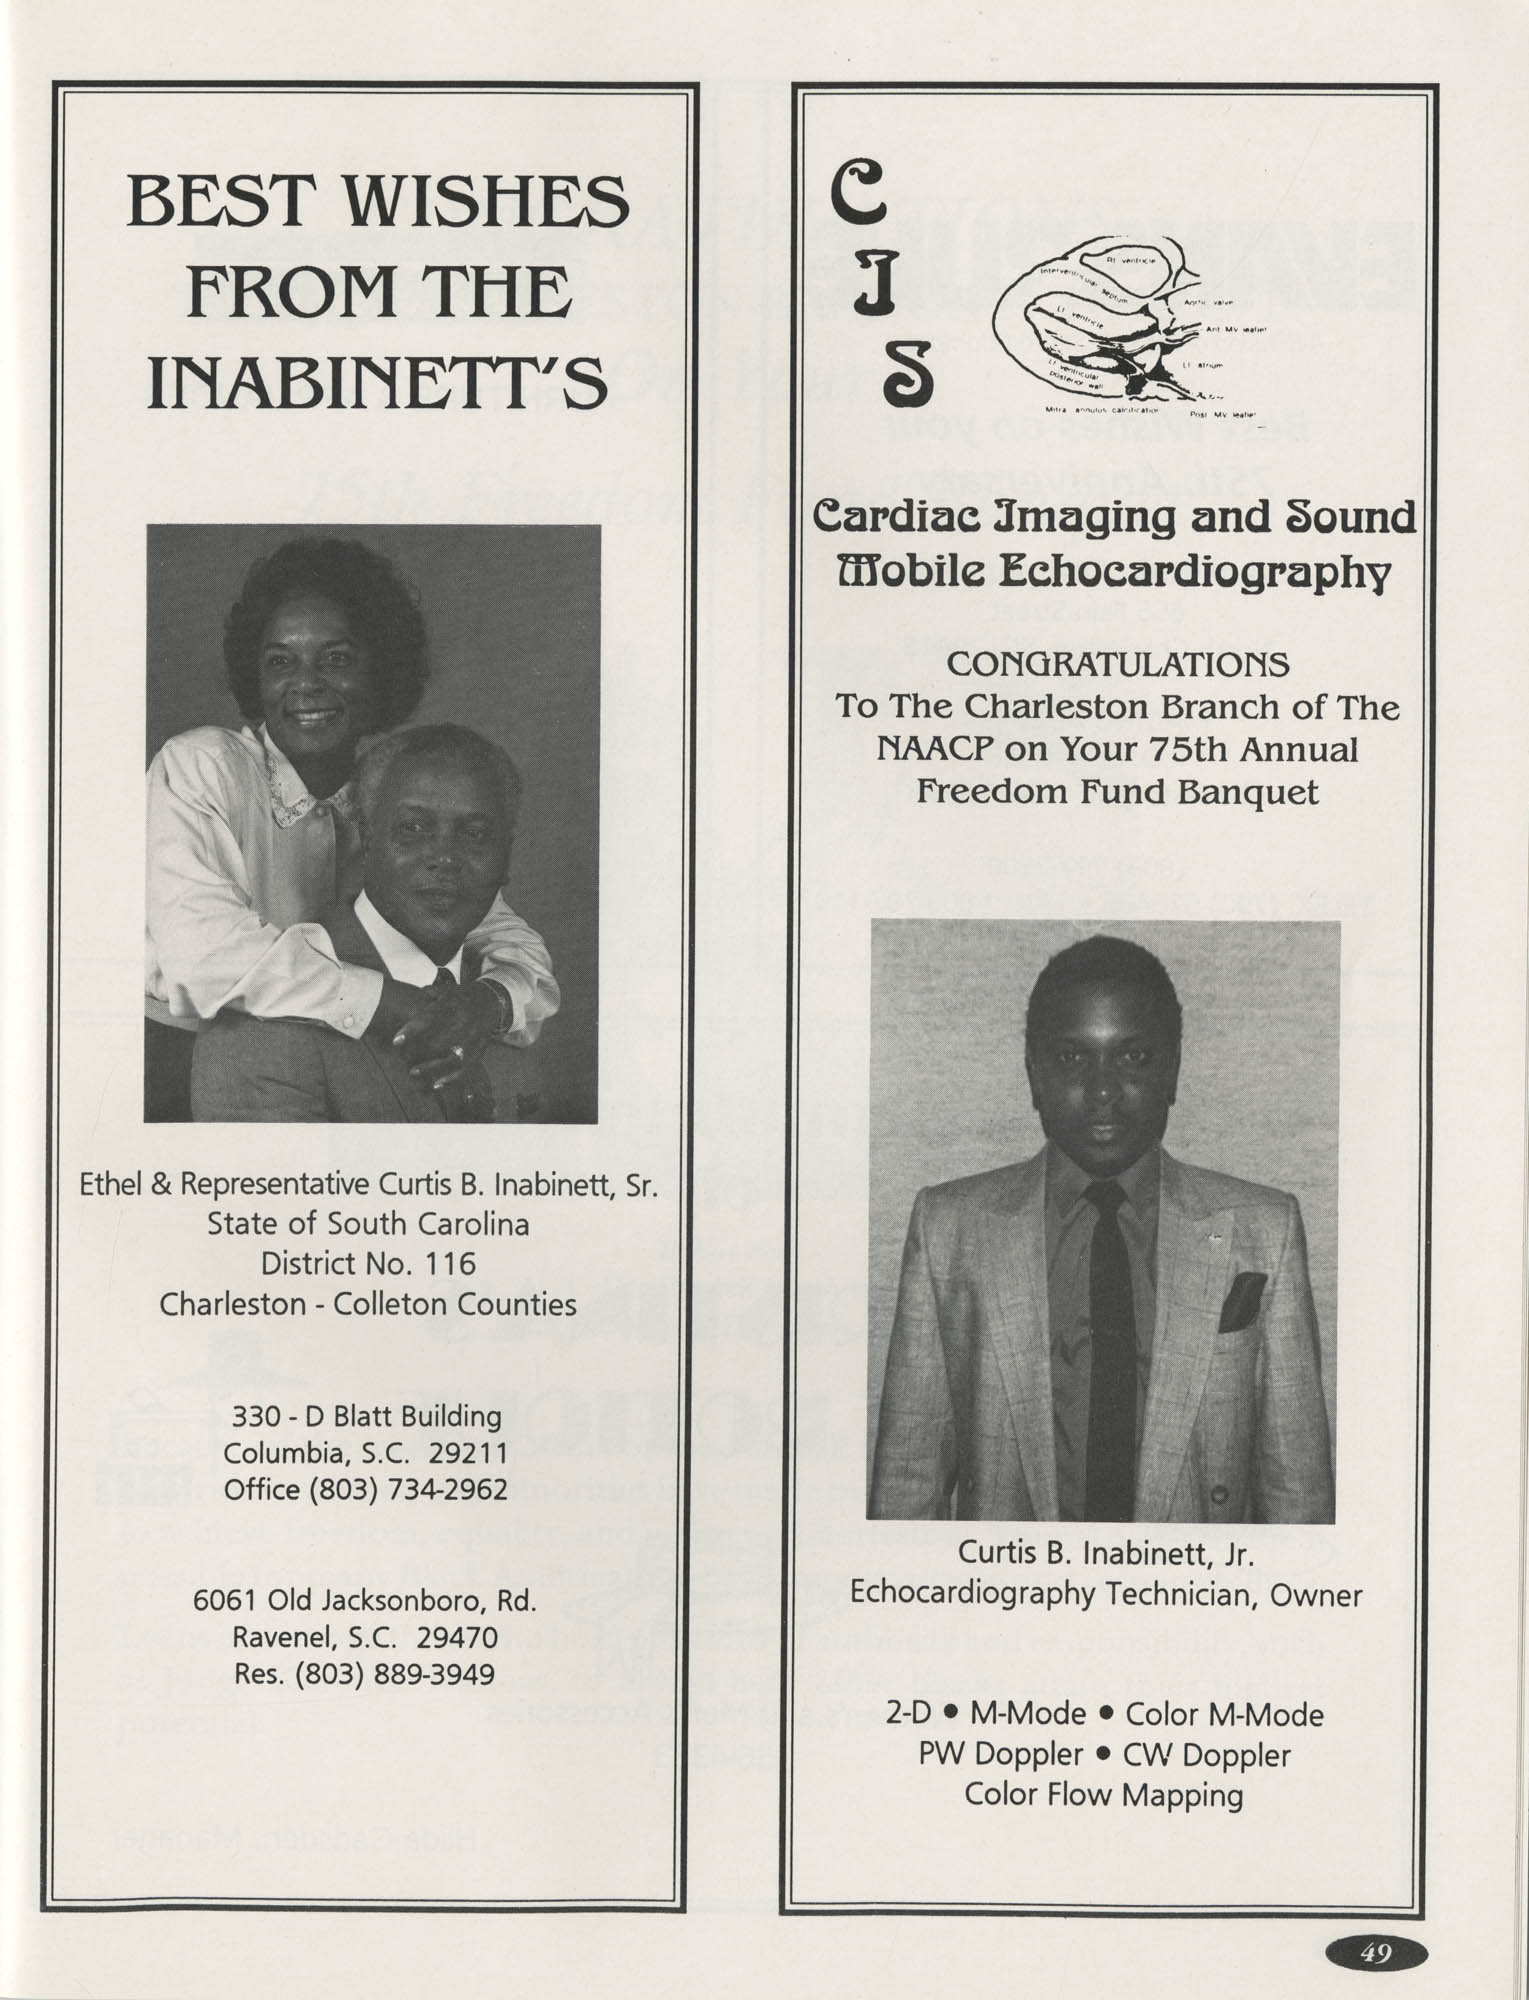 1991 Freedom Fund Magazine, Charleston Branch of the NAACP, Page 49